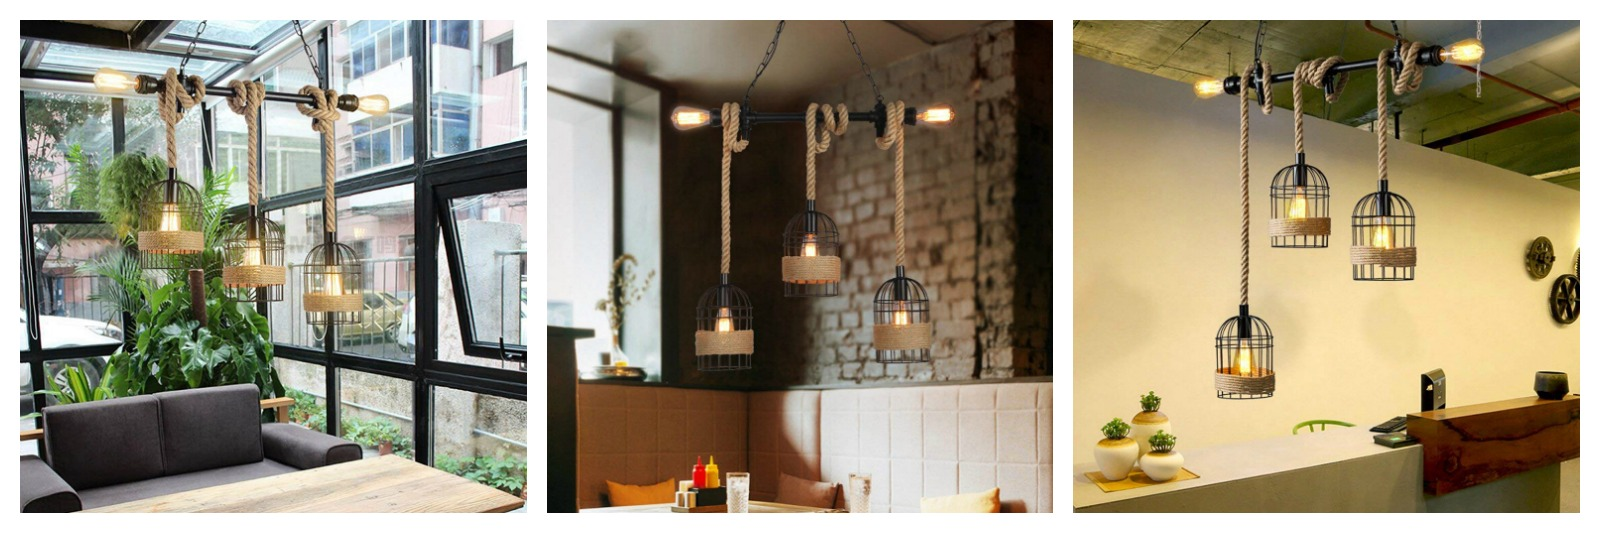 industrial cage lighting with rope accents